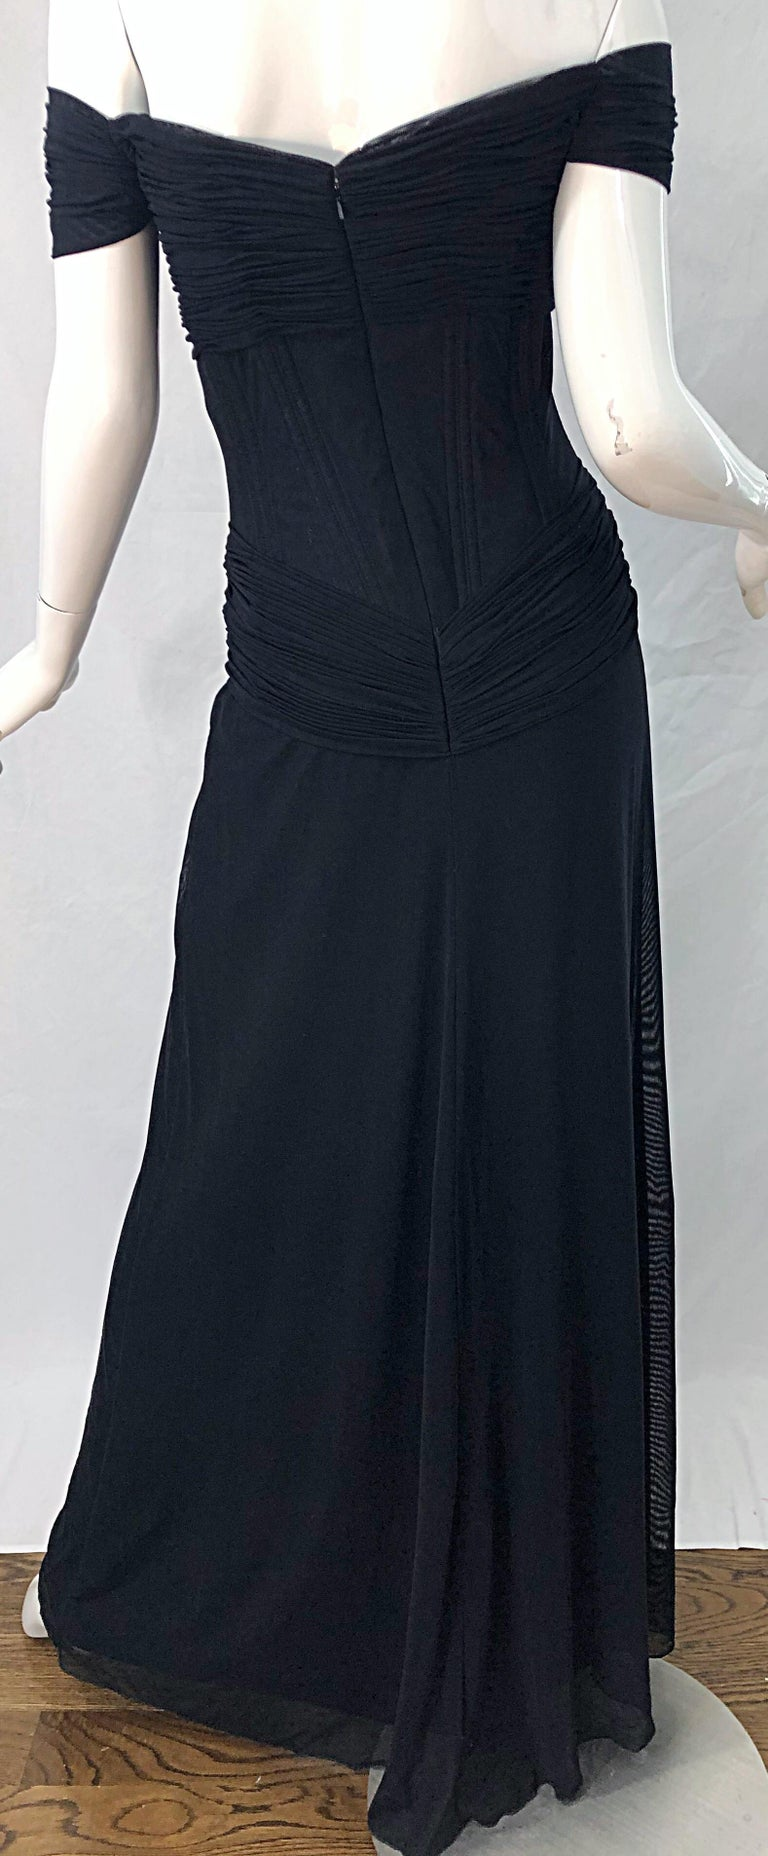 Julia Roberts Pretty Woman Vintage Vicky Tiel Couture Sz 12 Black 1980s Gown For Sale 4